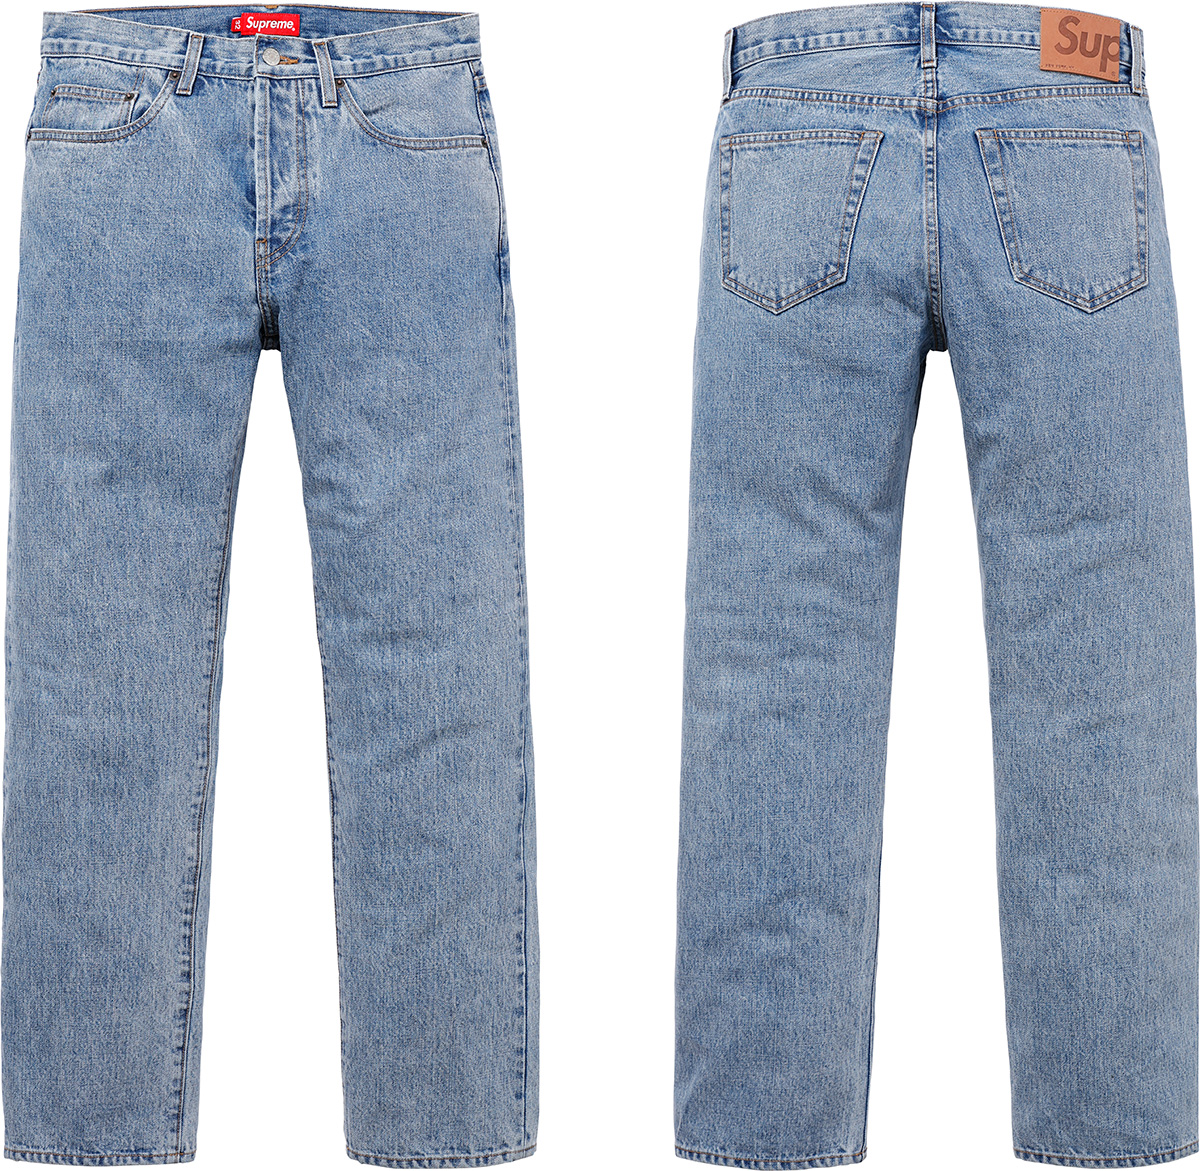 supreme-18aw-fall-winter-stone-washed-slim-jean